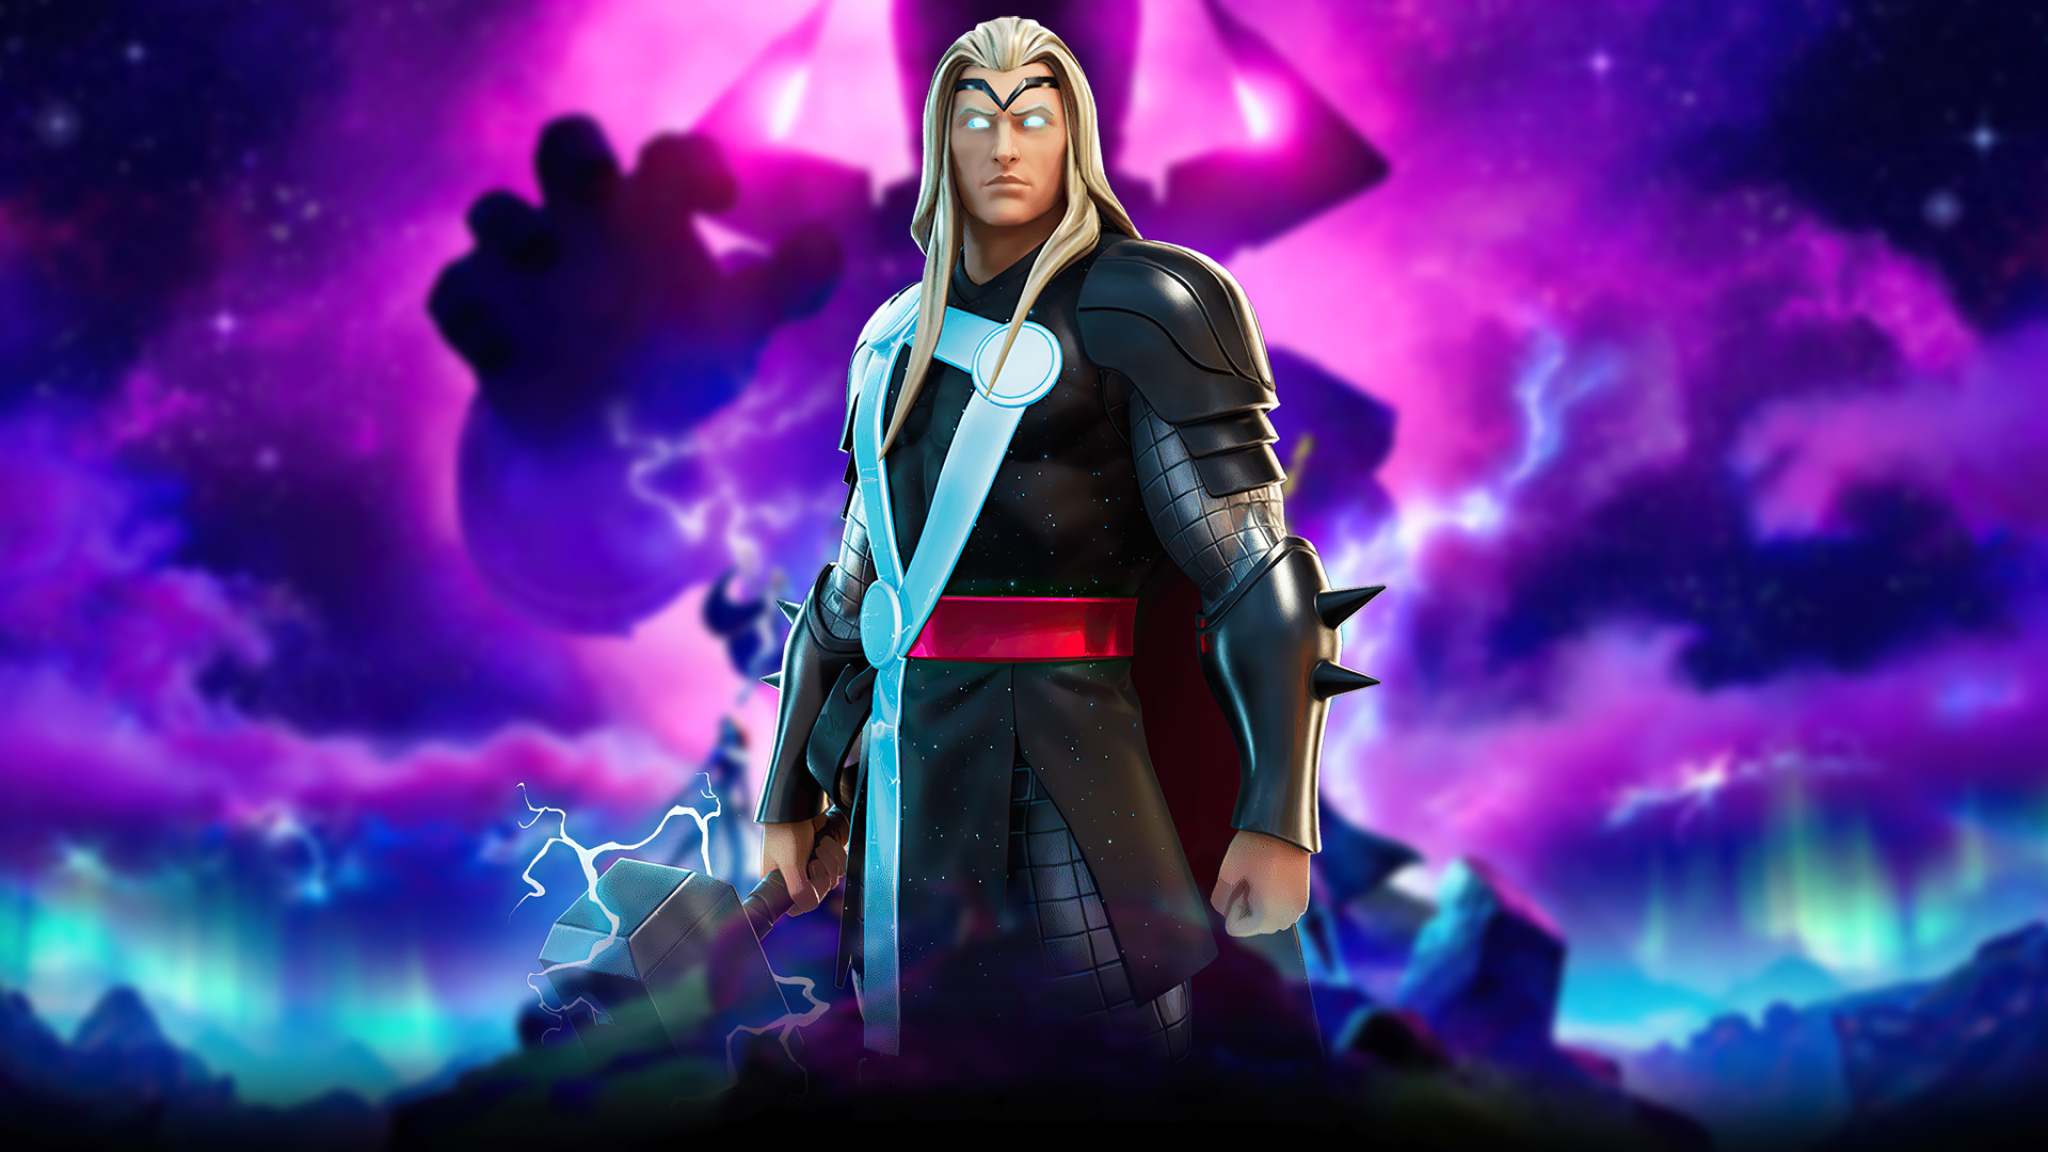 Marvel Thor Fortnite Wallpaper in 2048x1152 Resolution